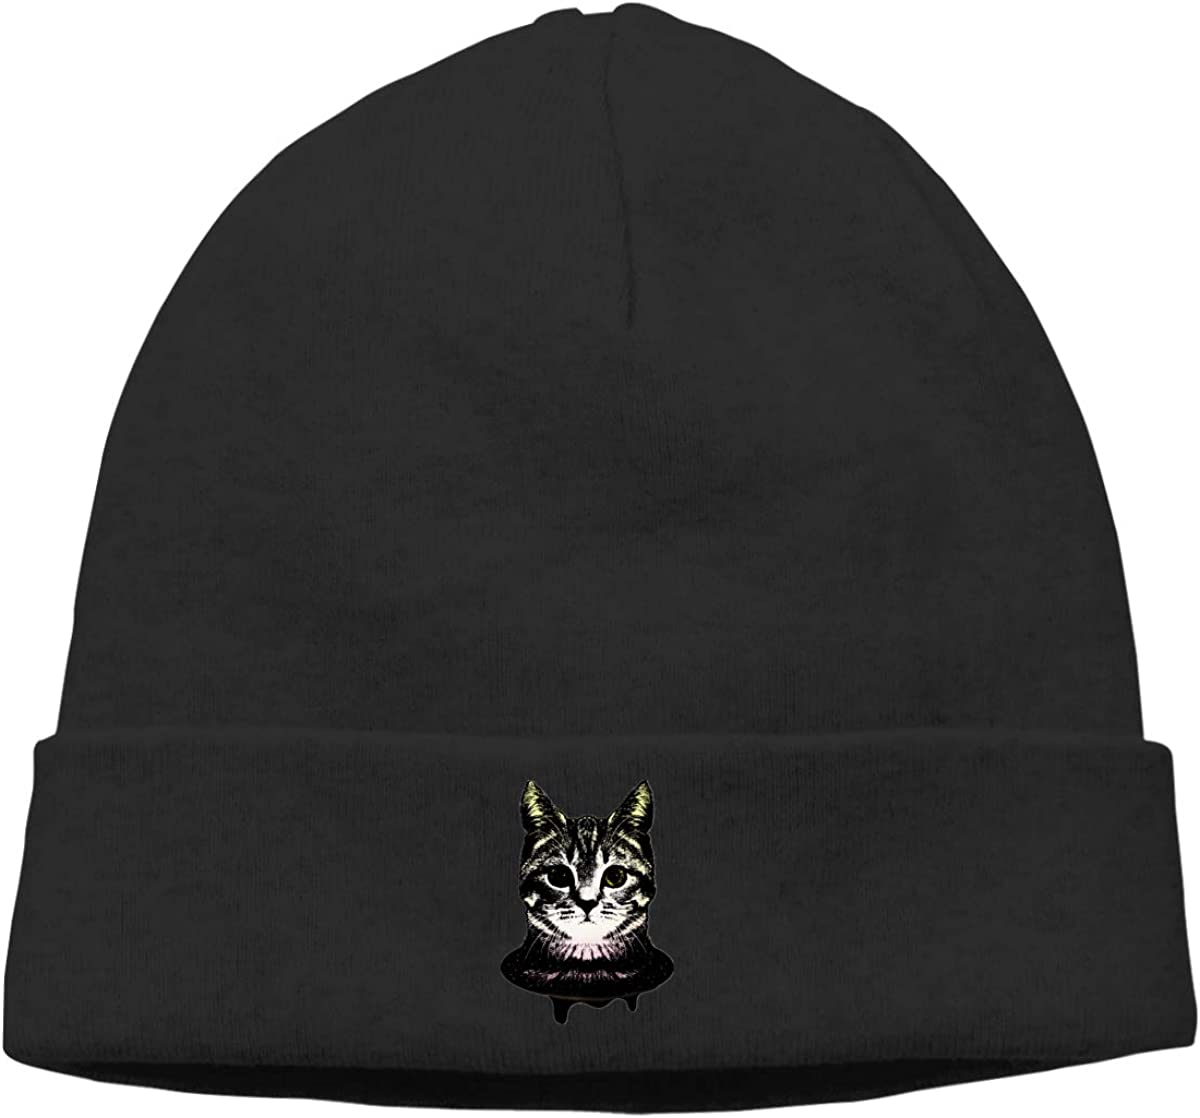 Cat Unisex Cuffed Comfortbale Soft Beanie Hats